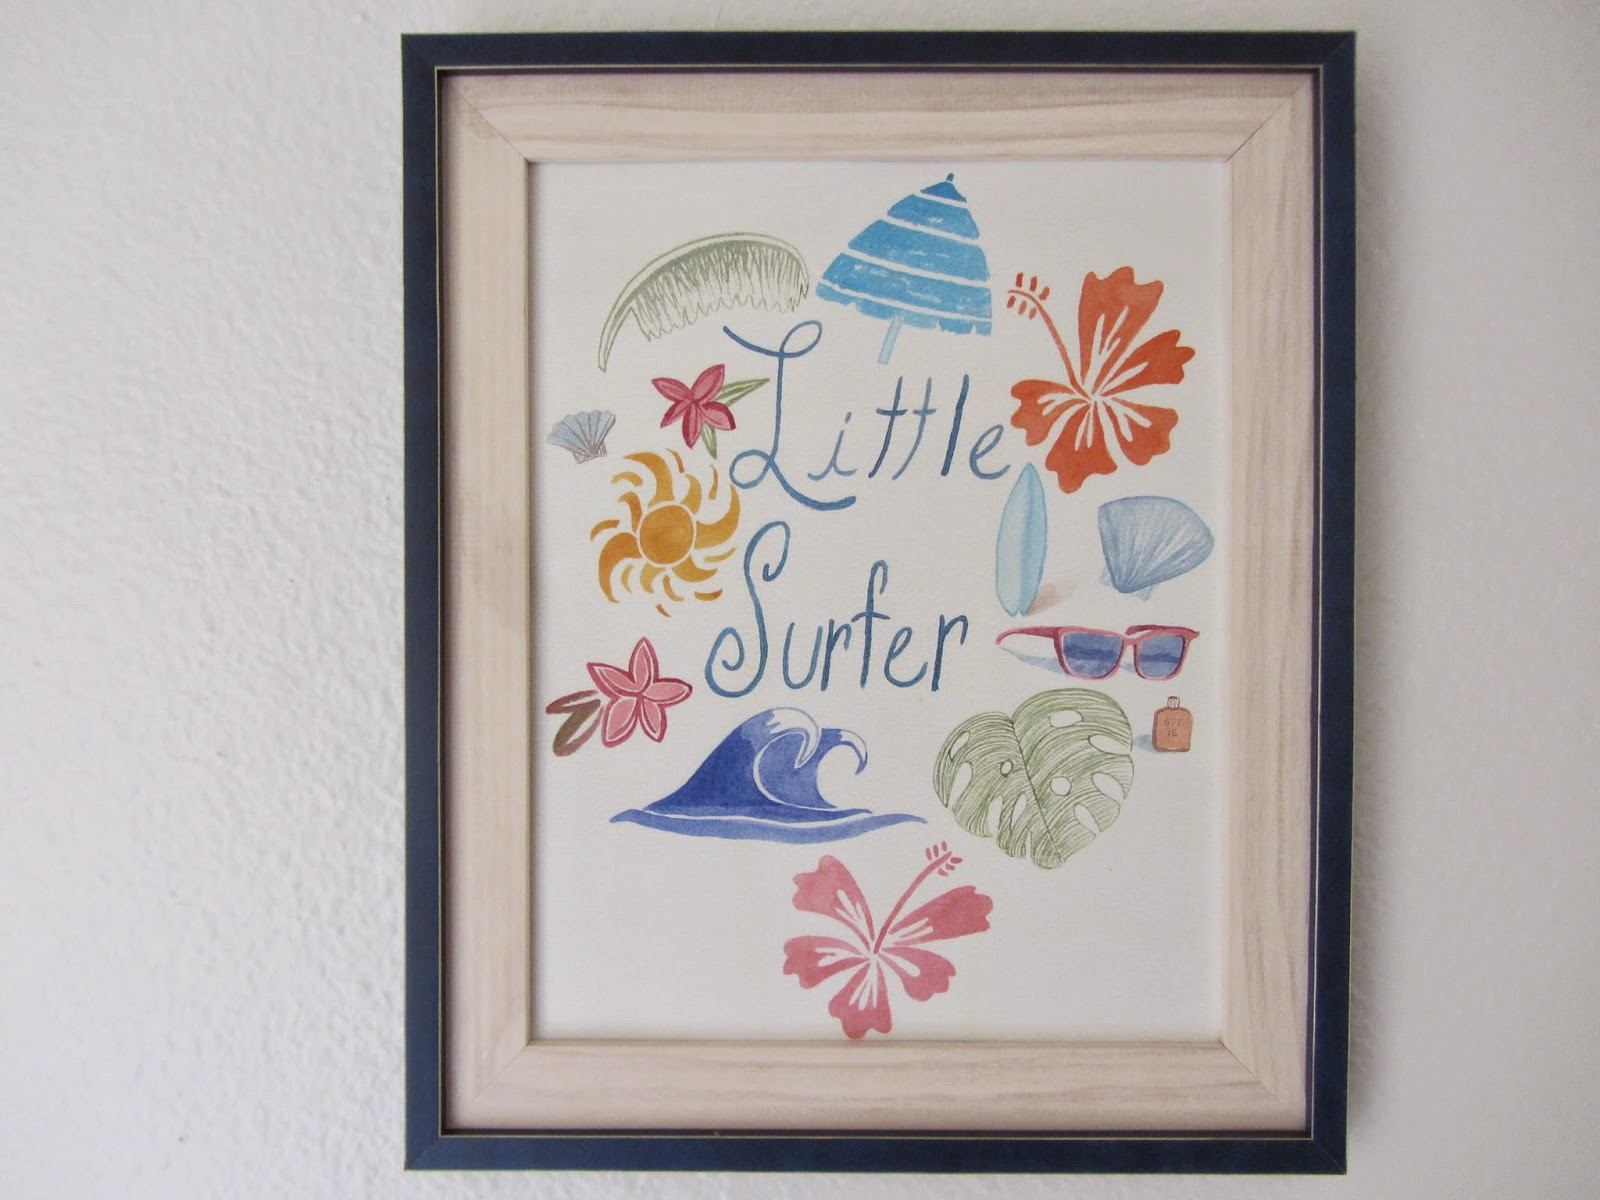 https://www.etsy.com/listing/227293962/little-surfer-print-of-original?ref=shop_home_active_1